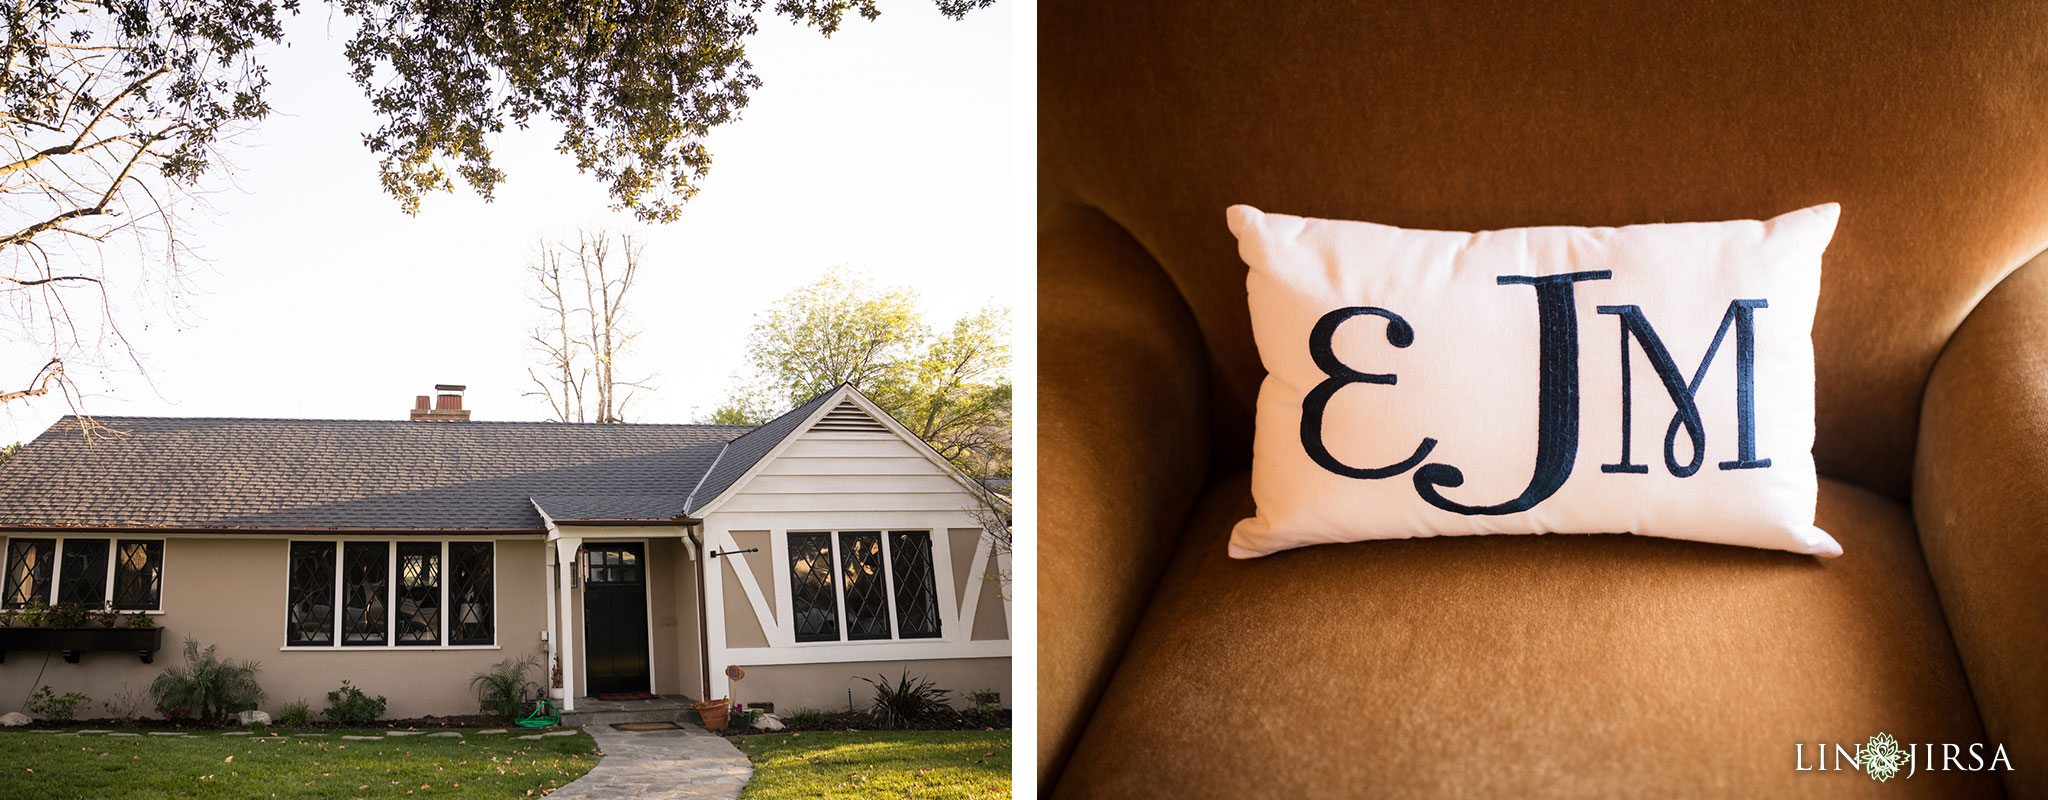 11 los angeles country home engagement photography